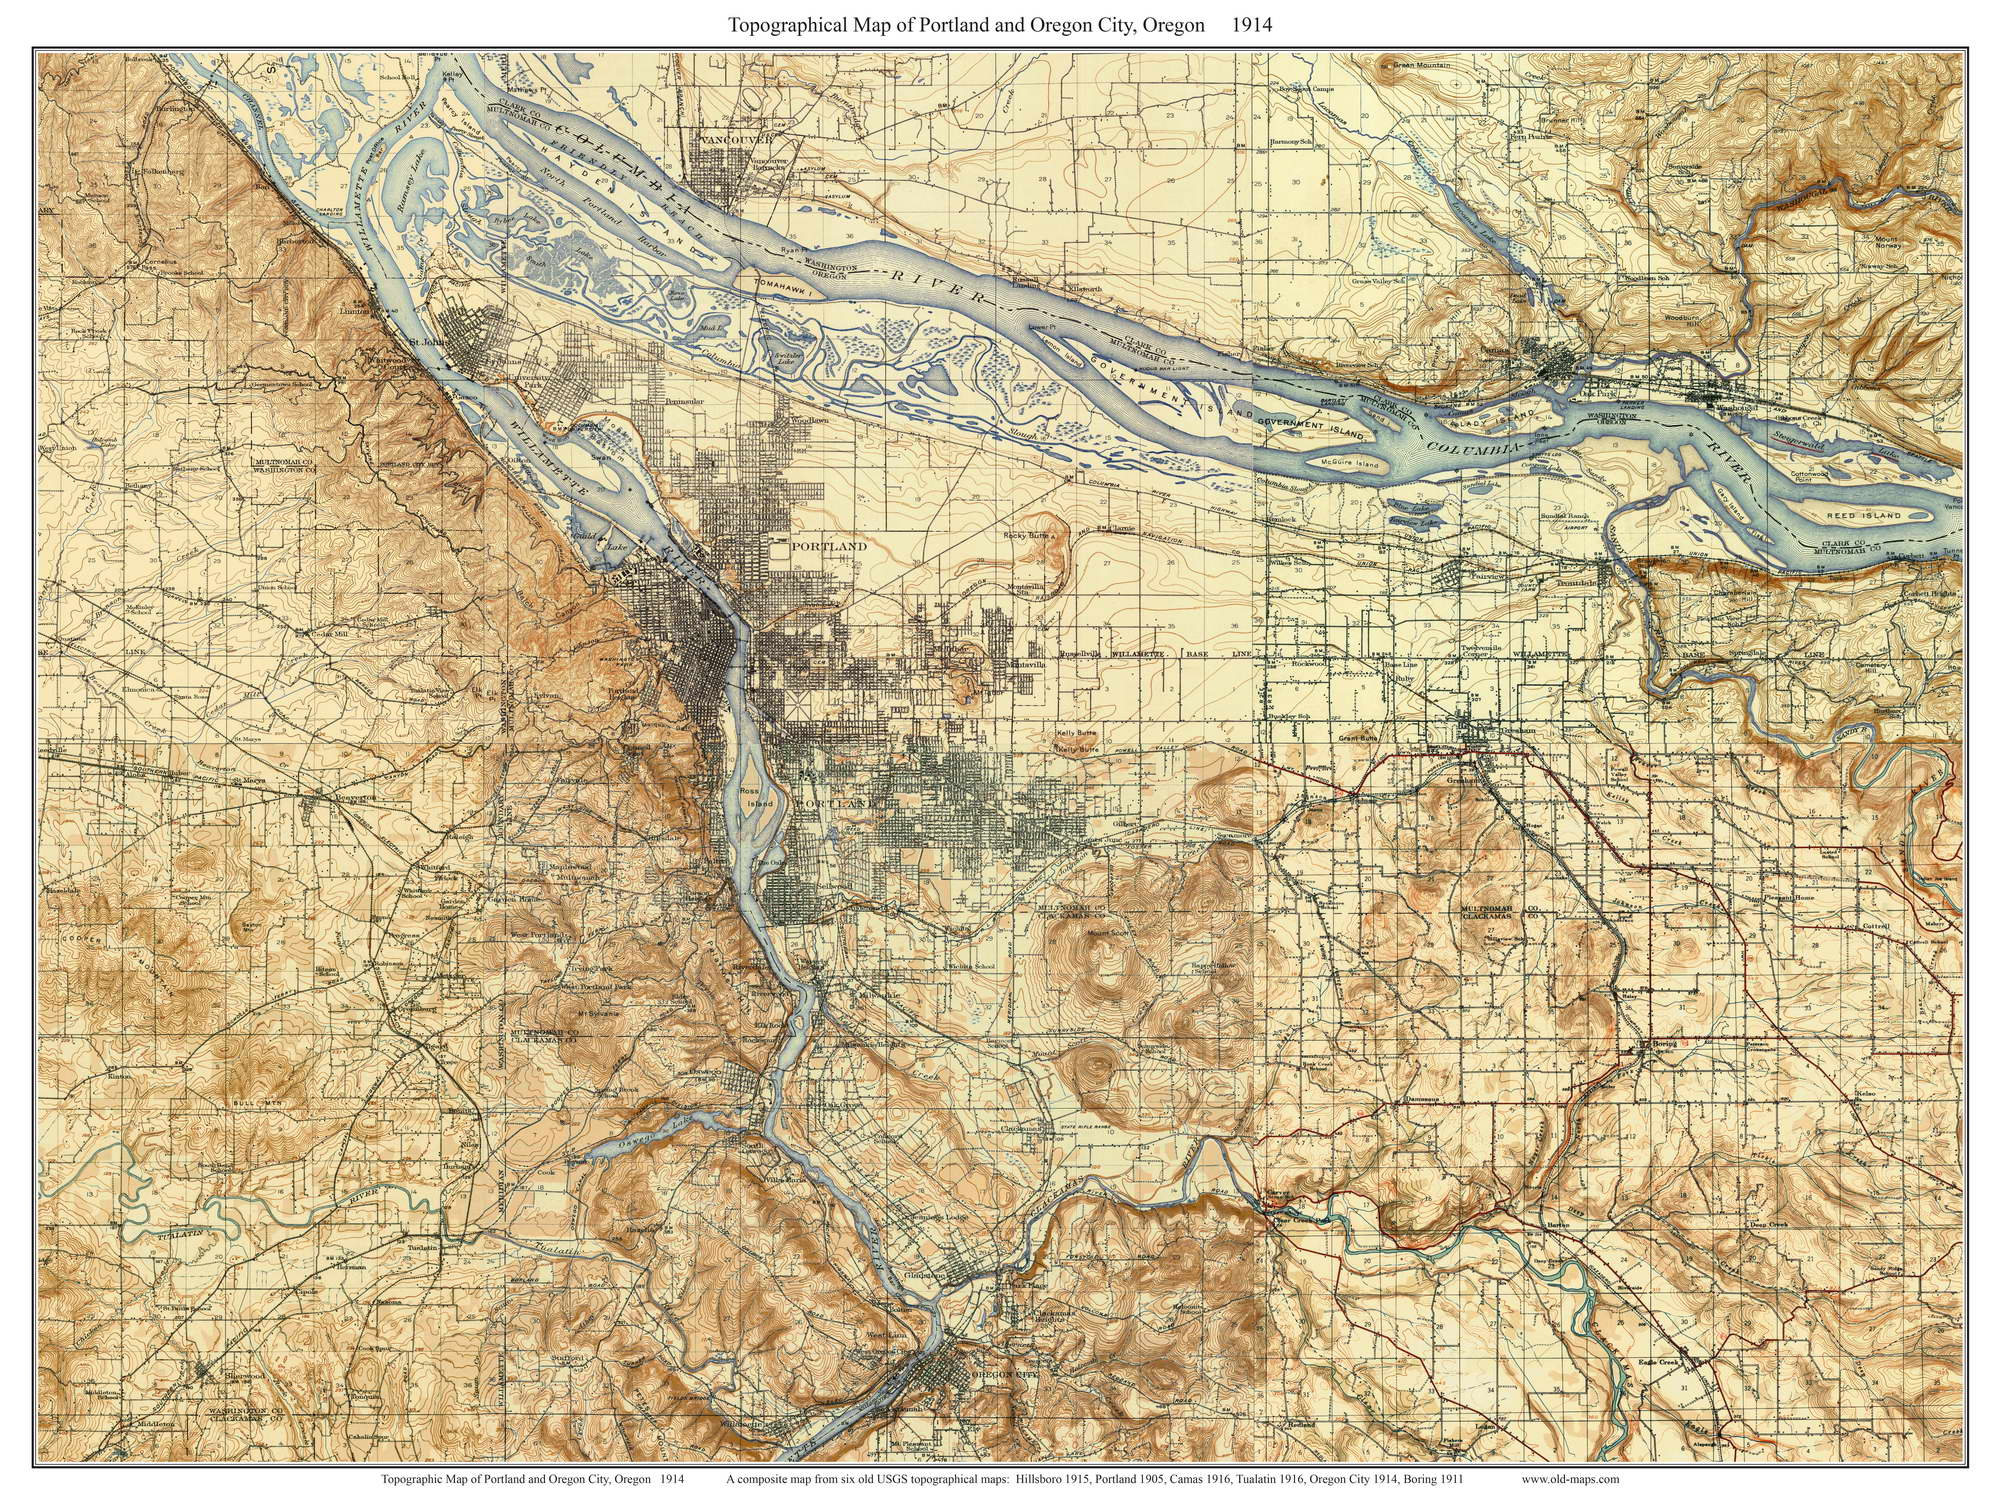 Portland and Oregon City 1914 Old Topographic Map USGS